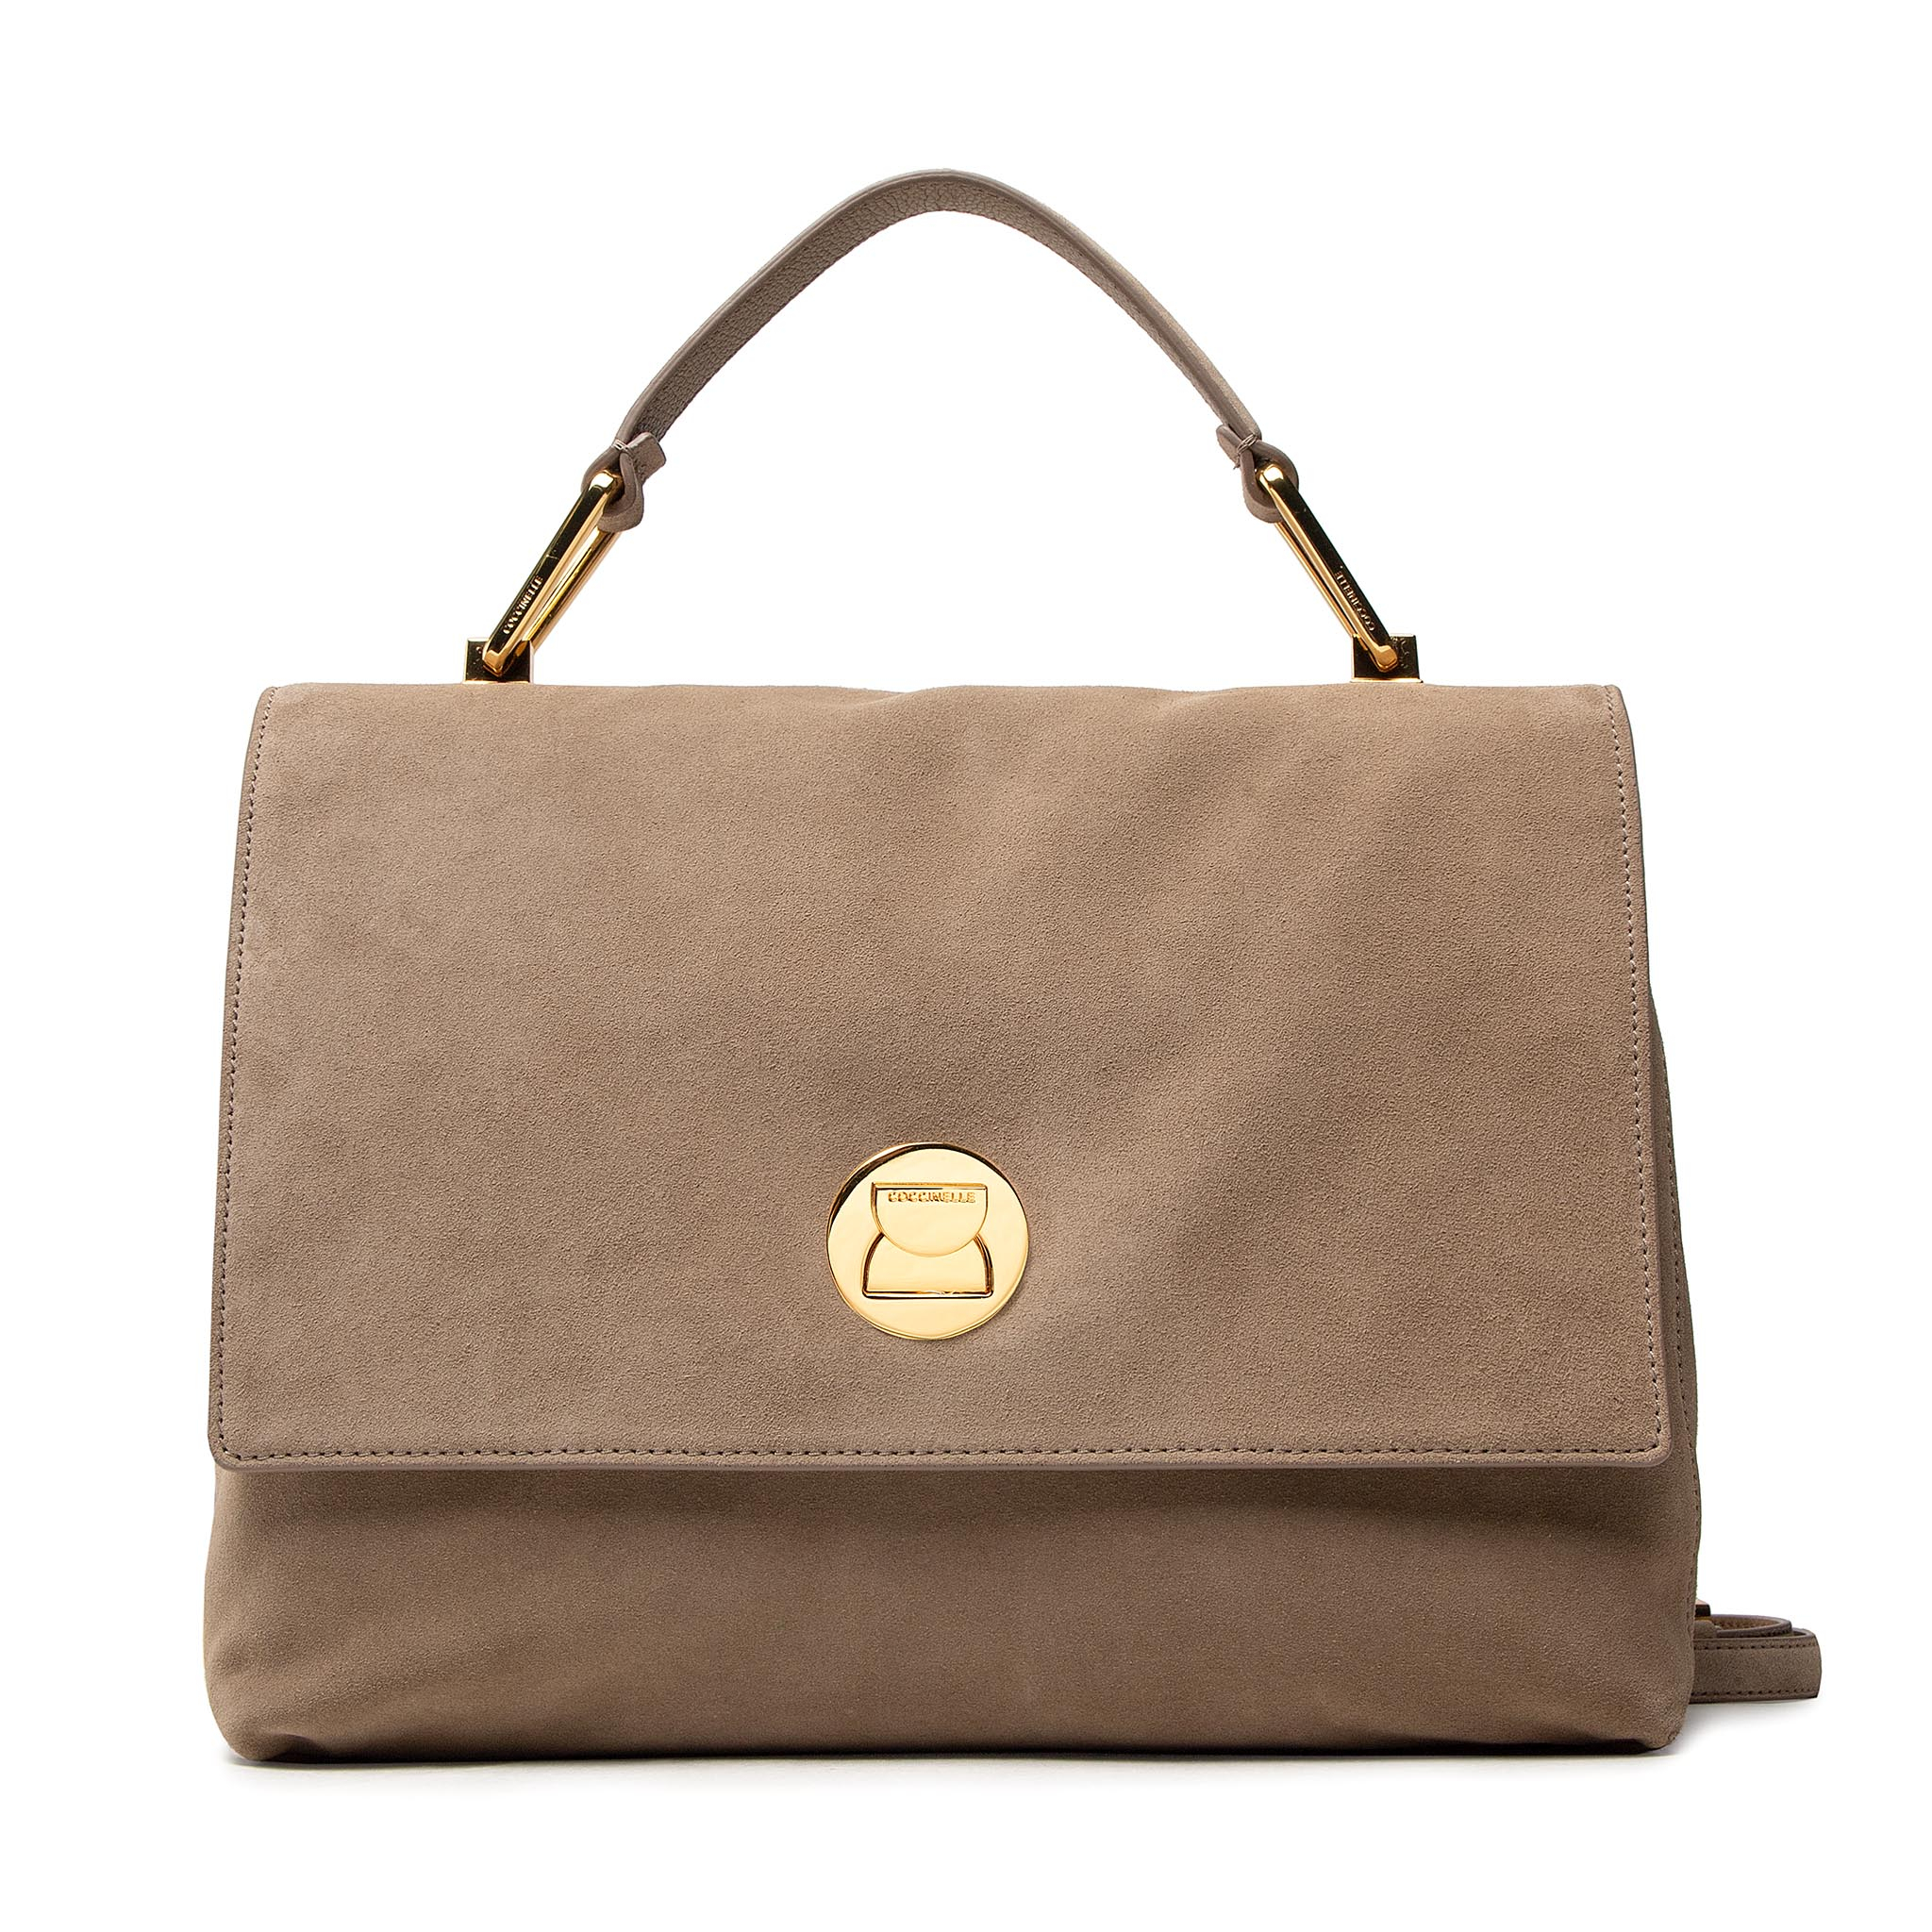 Coccinelle ID1 Liya Suede E1 ID1 18 01 01 New Taupe/New Taupe